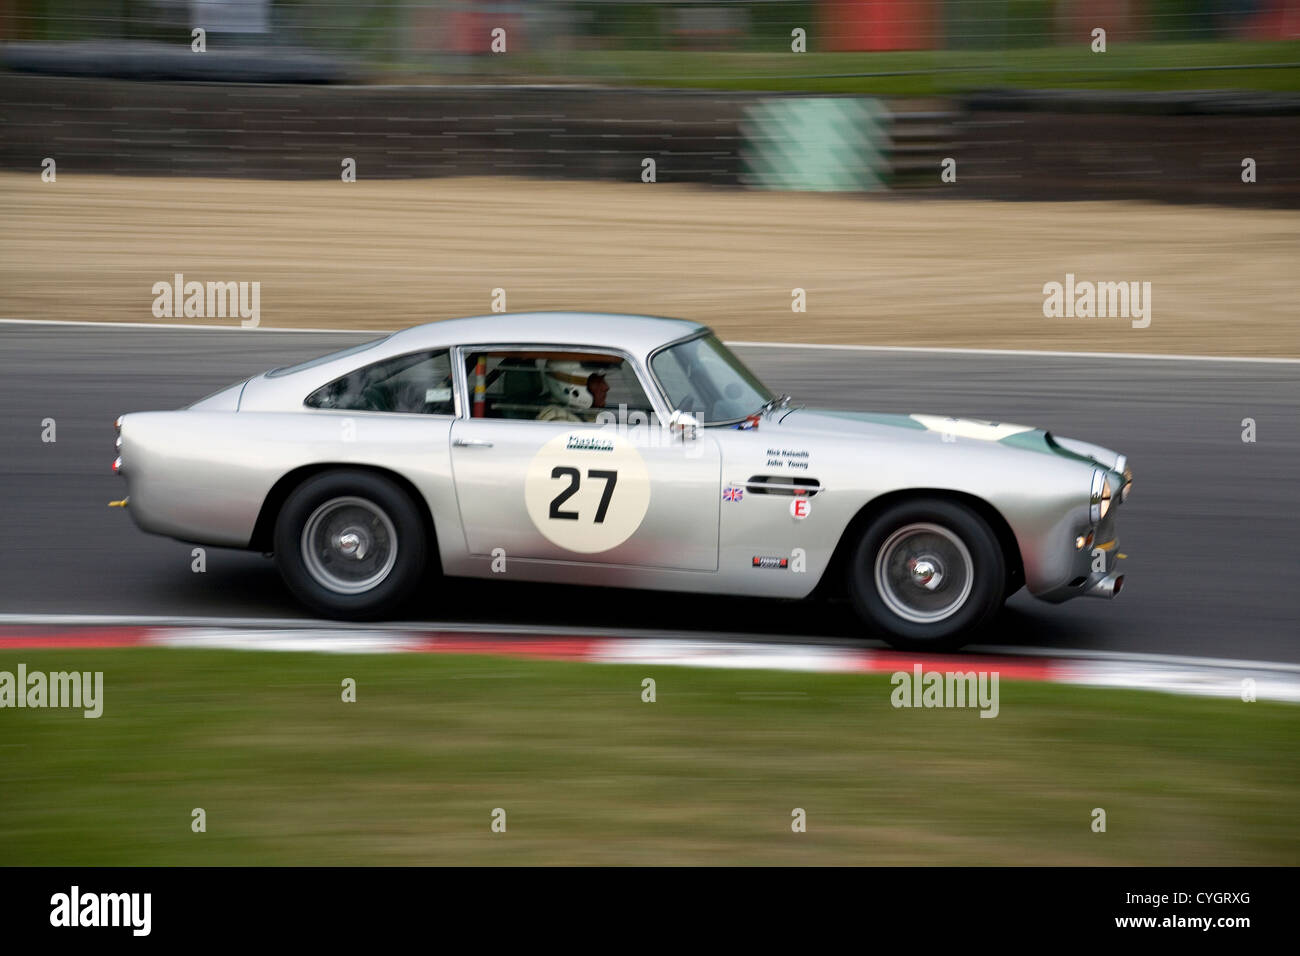 Old Aston Martin Stock Photos Amp Old Aston Martin Stock